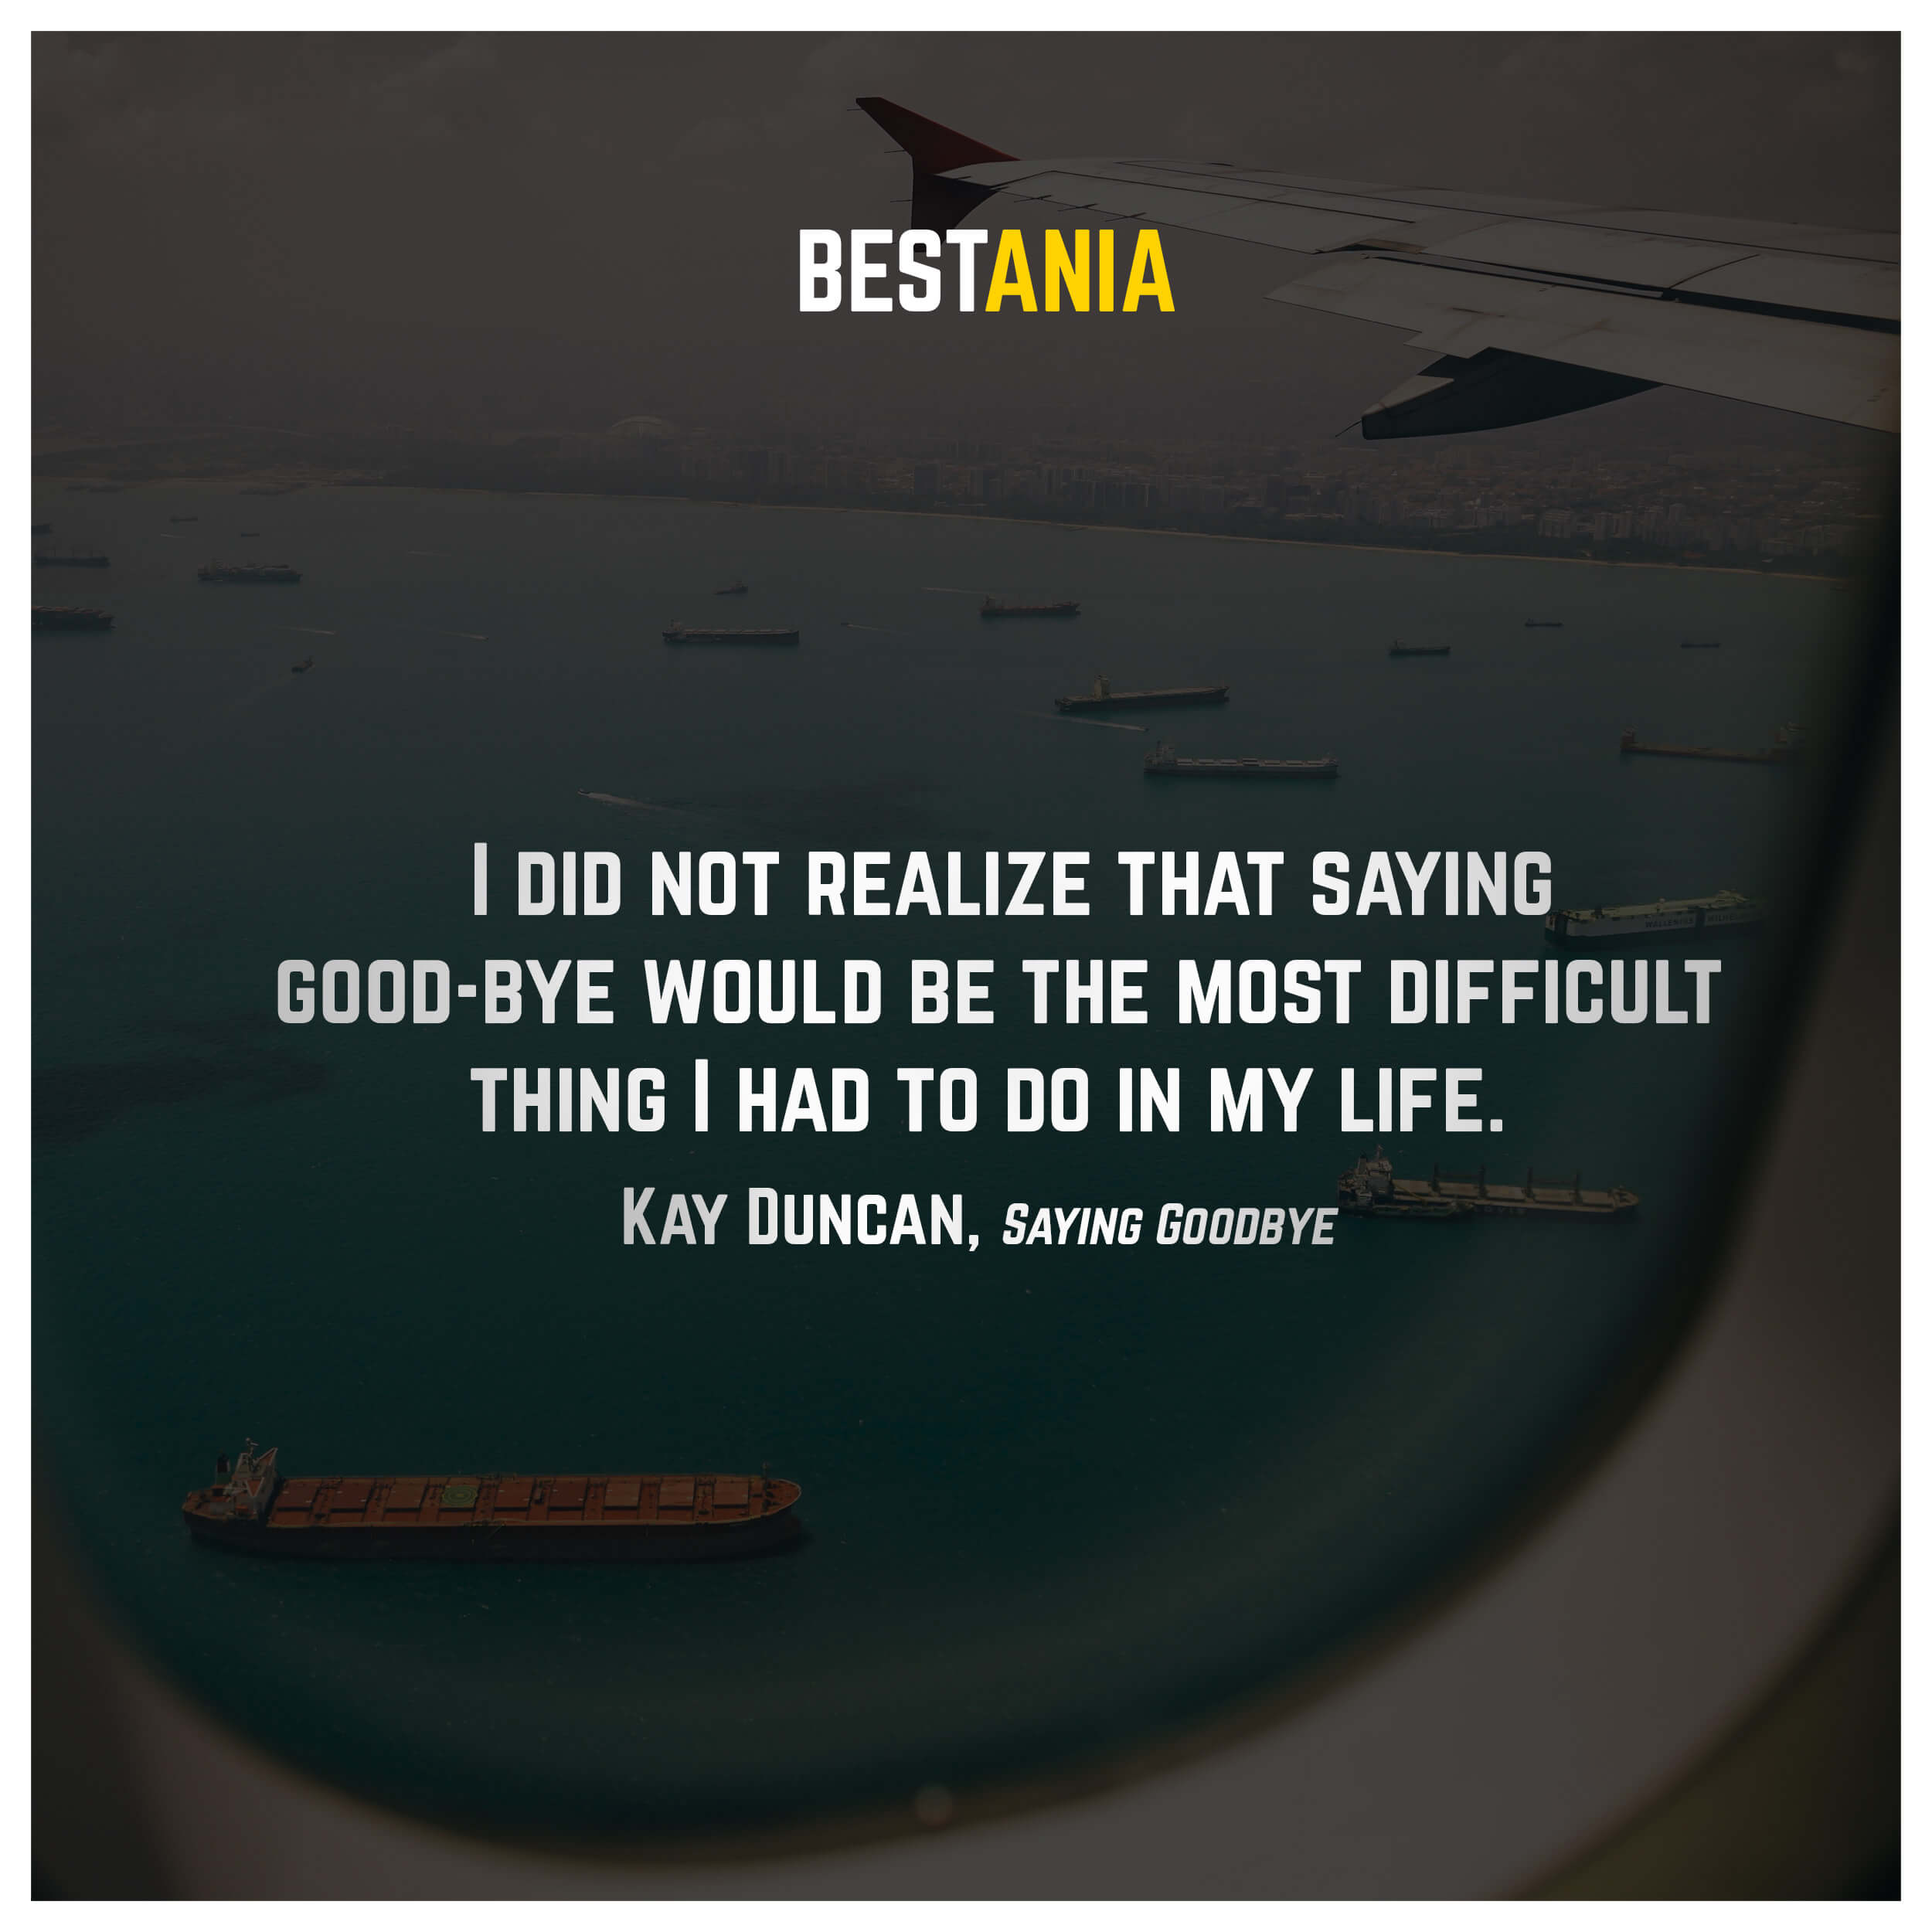 I did not realize that saying good-bye would be the most difficult thing I had to do in my life. Kay Duncan, Saying Goodbye